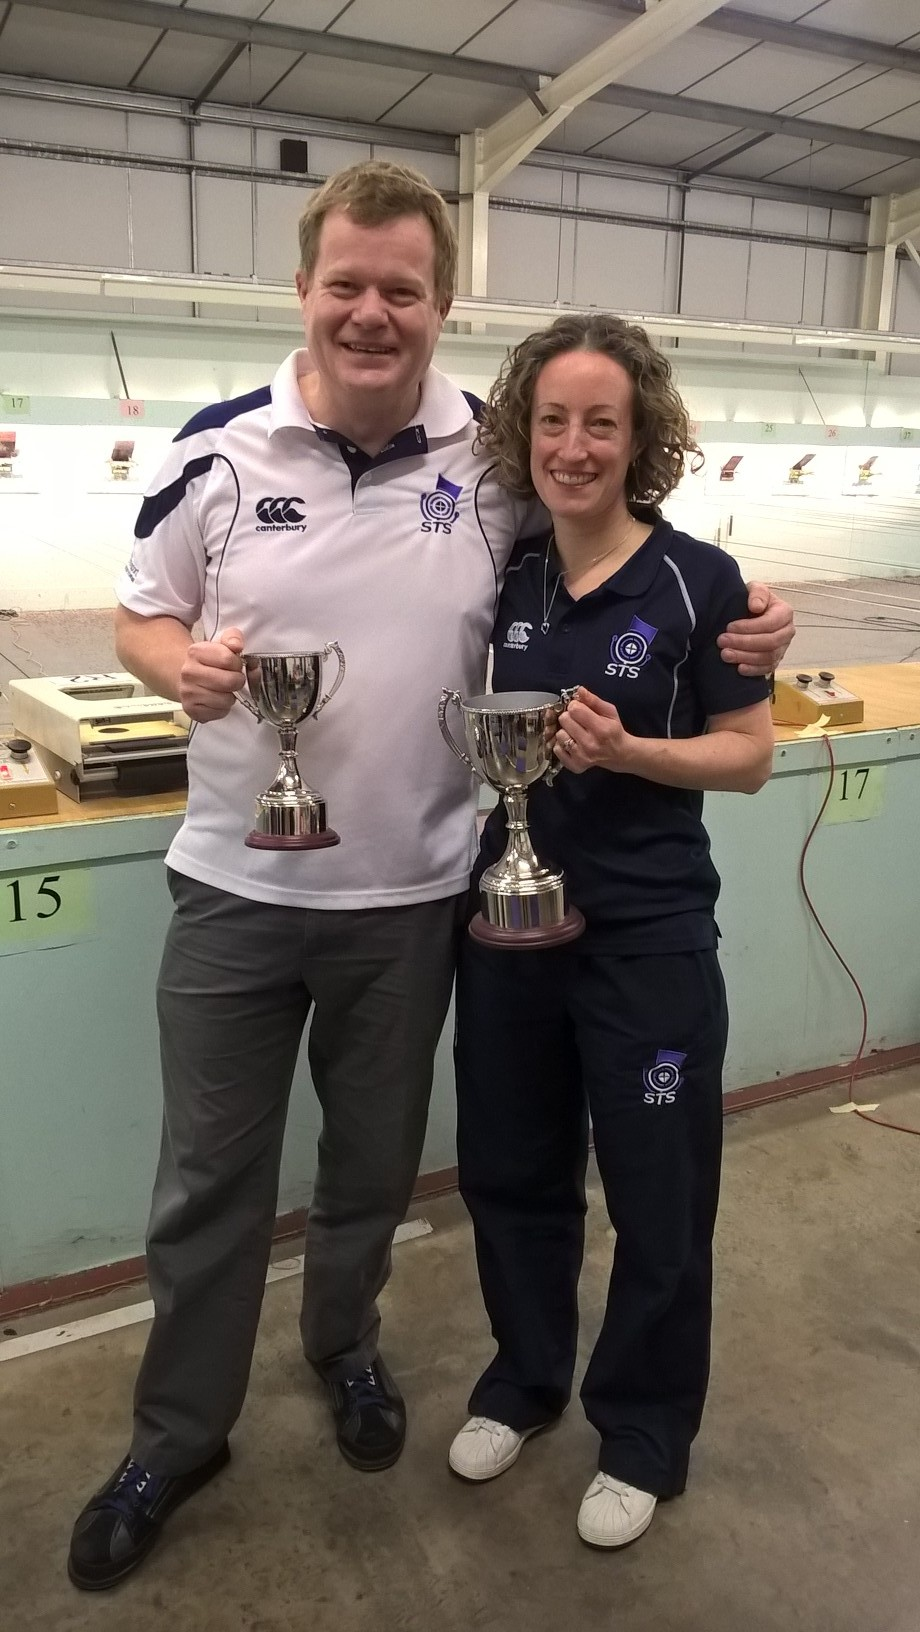 Alan Goodall & Caroline Brownlie enjoy success for a second time in January 2017 at the NISC and Geoff Partridge Memorial event